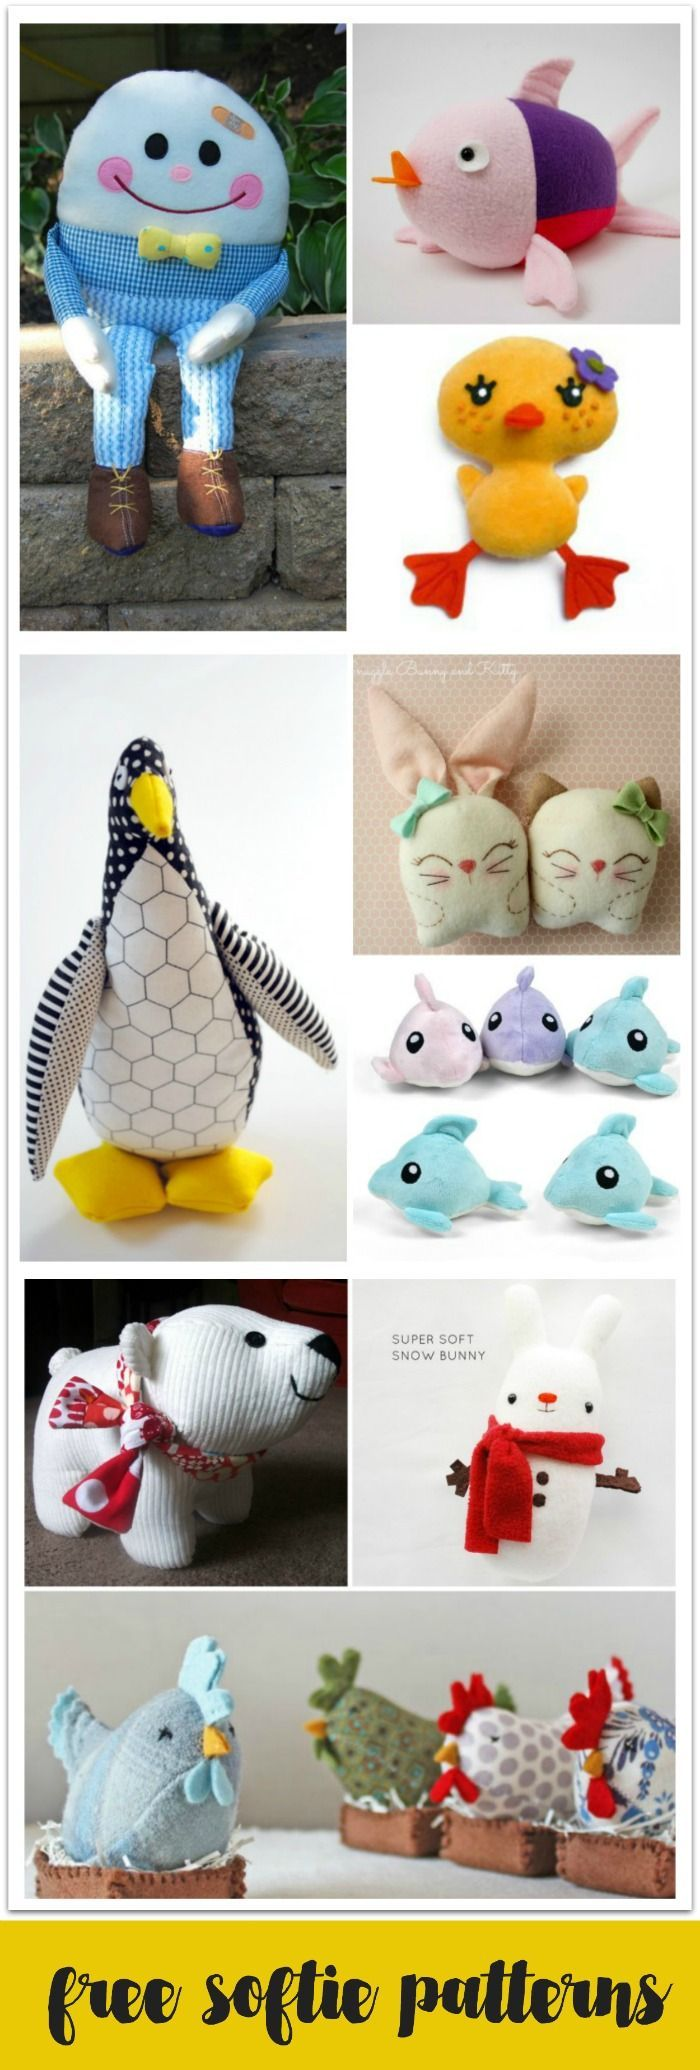 10 Free Softie Patterns to Sew for Sew-a-Softie Day | Costura ...